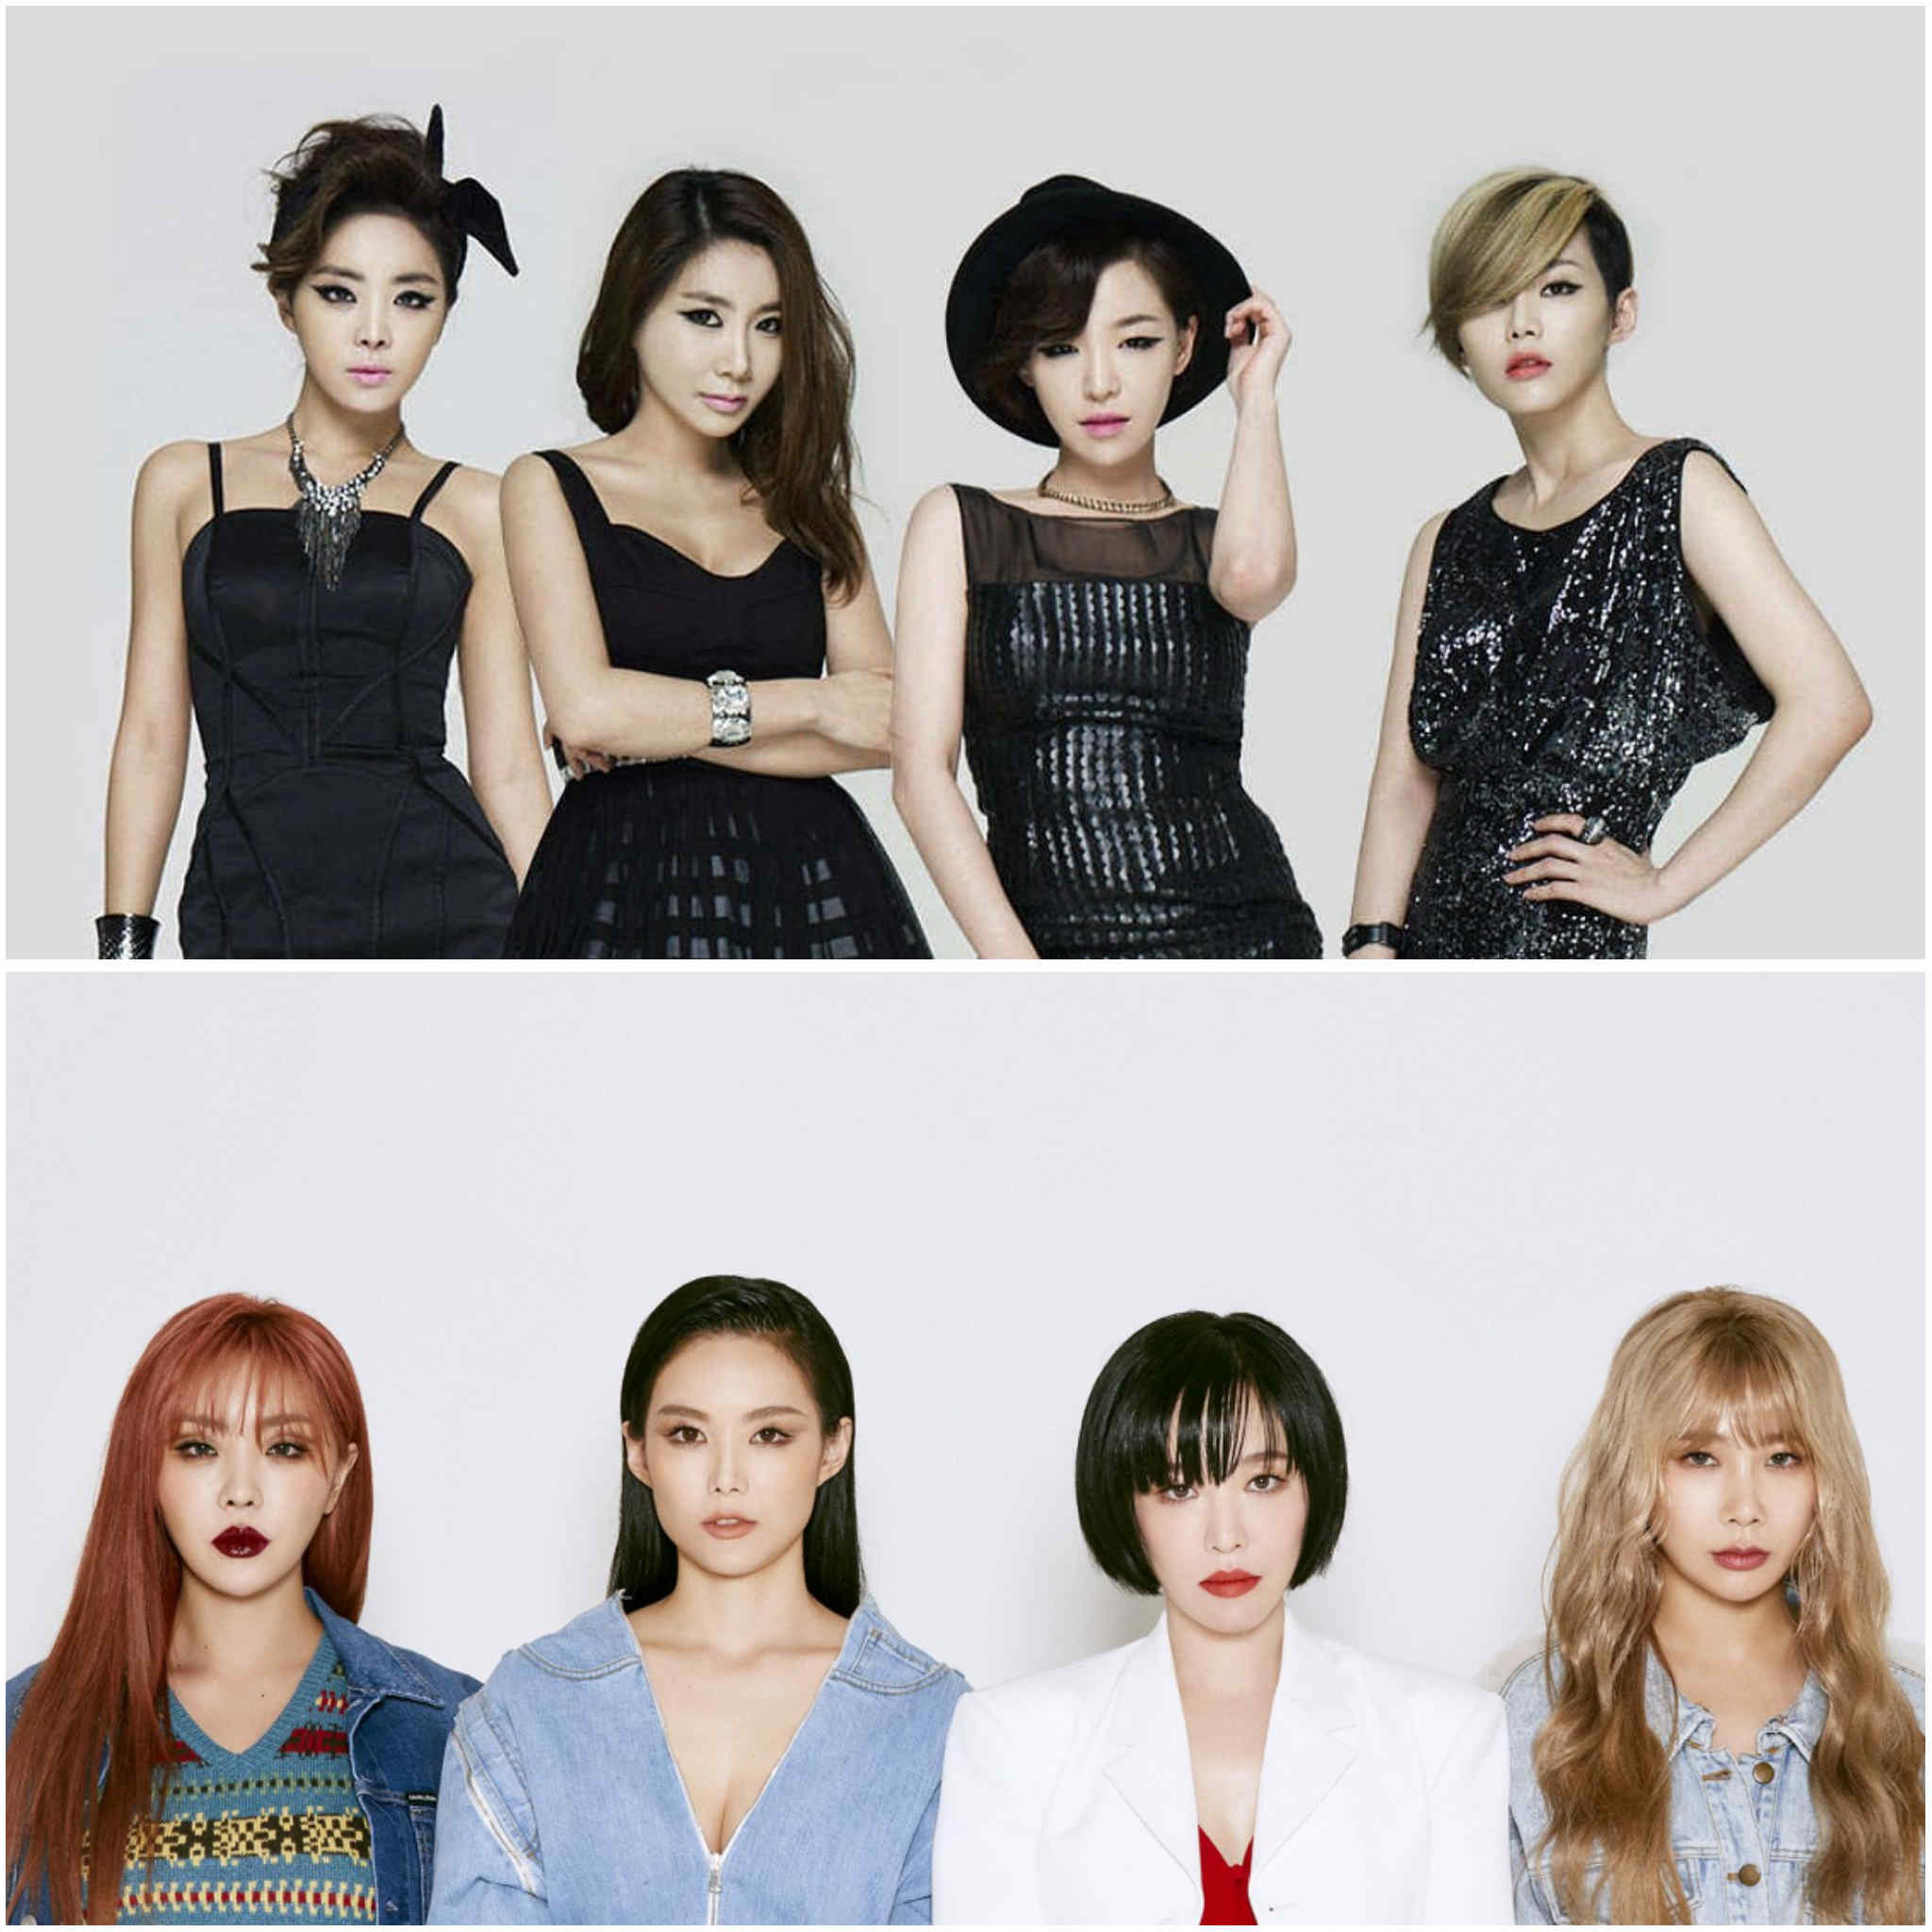 2nd generation K-pop groups - Brown Eyed Girls